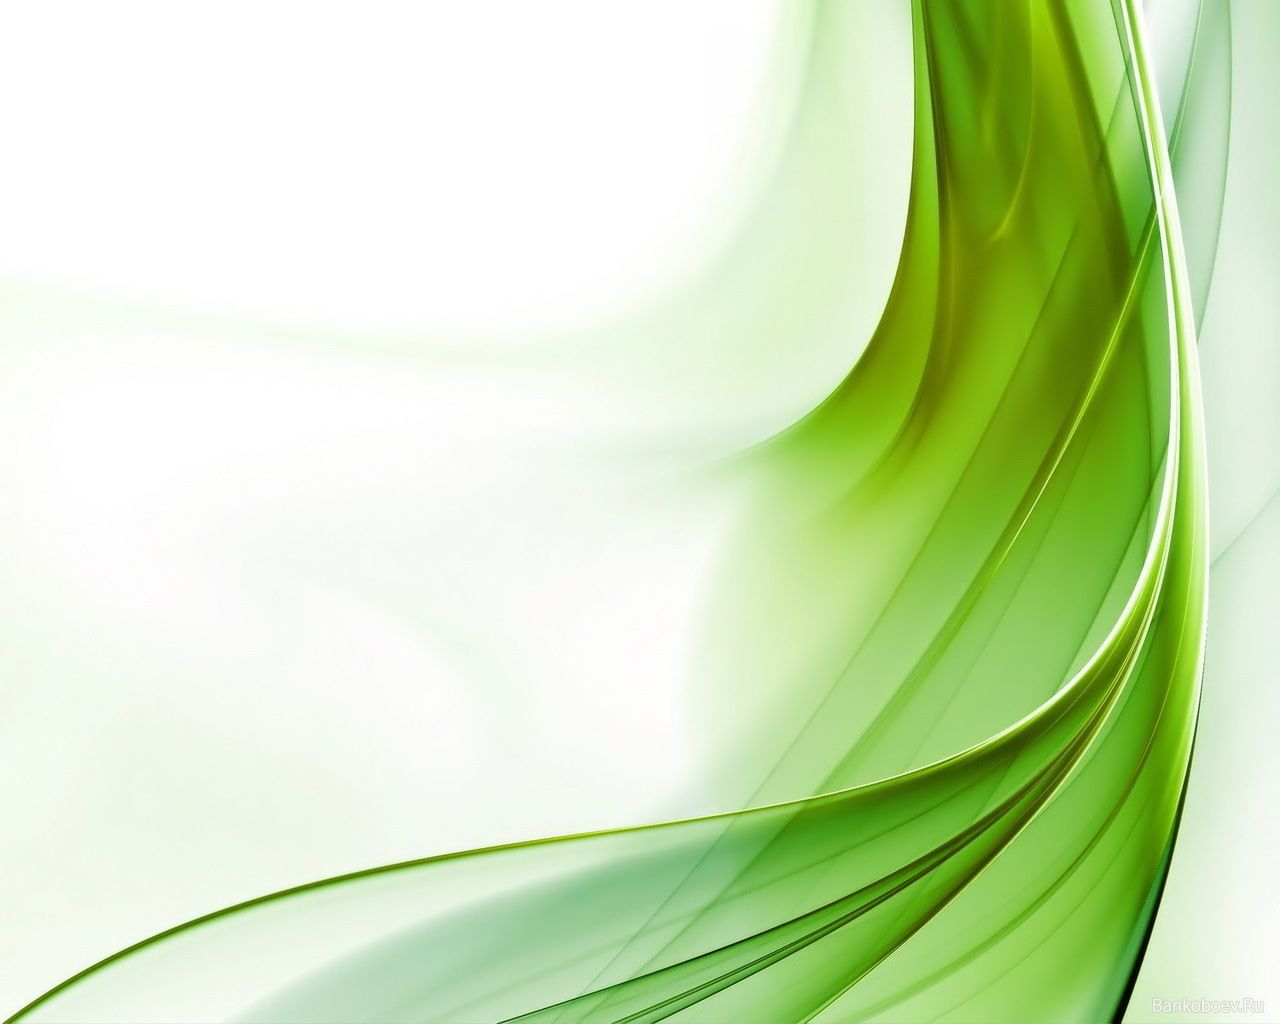 Green wave abstract backgrounds for powerpoint templates recipes green wave abstract backgrounds for powerpoint templates alramifo Choice Image